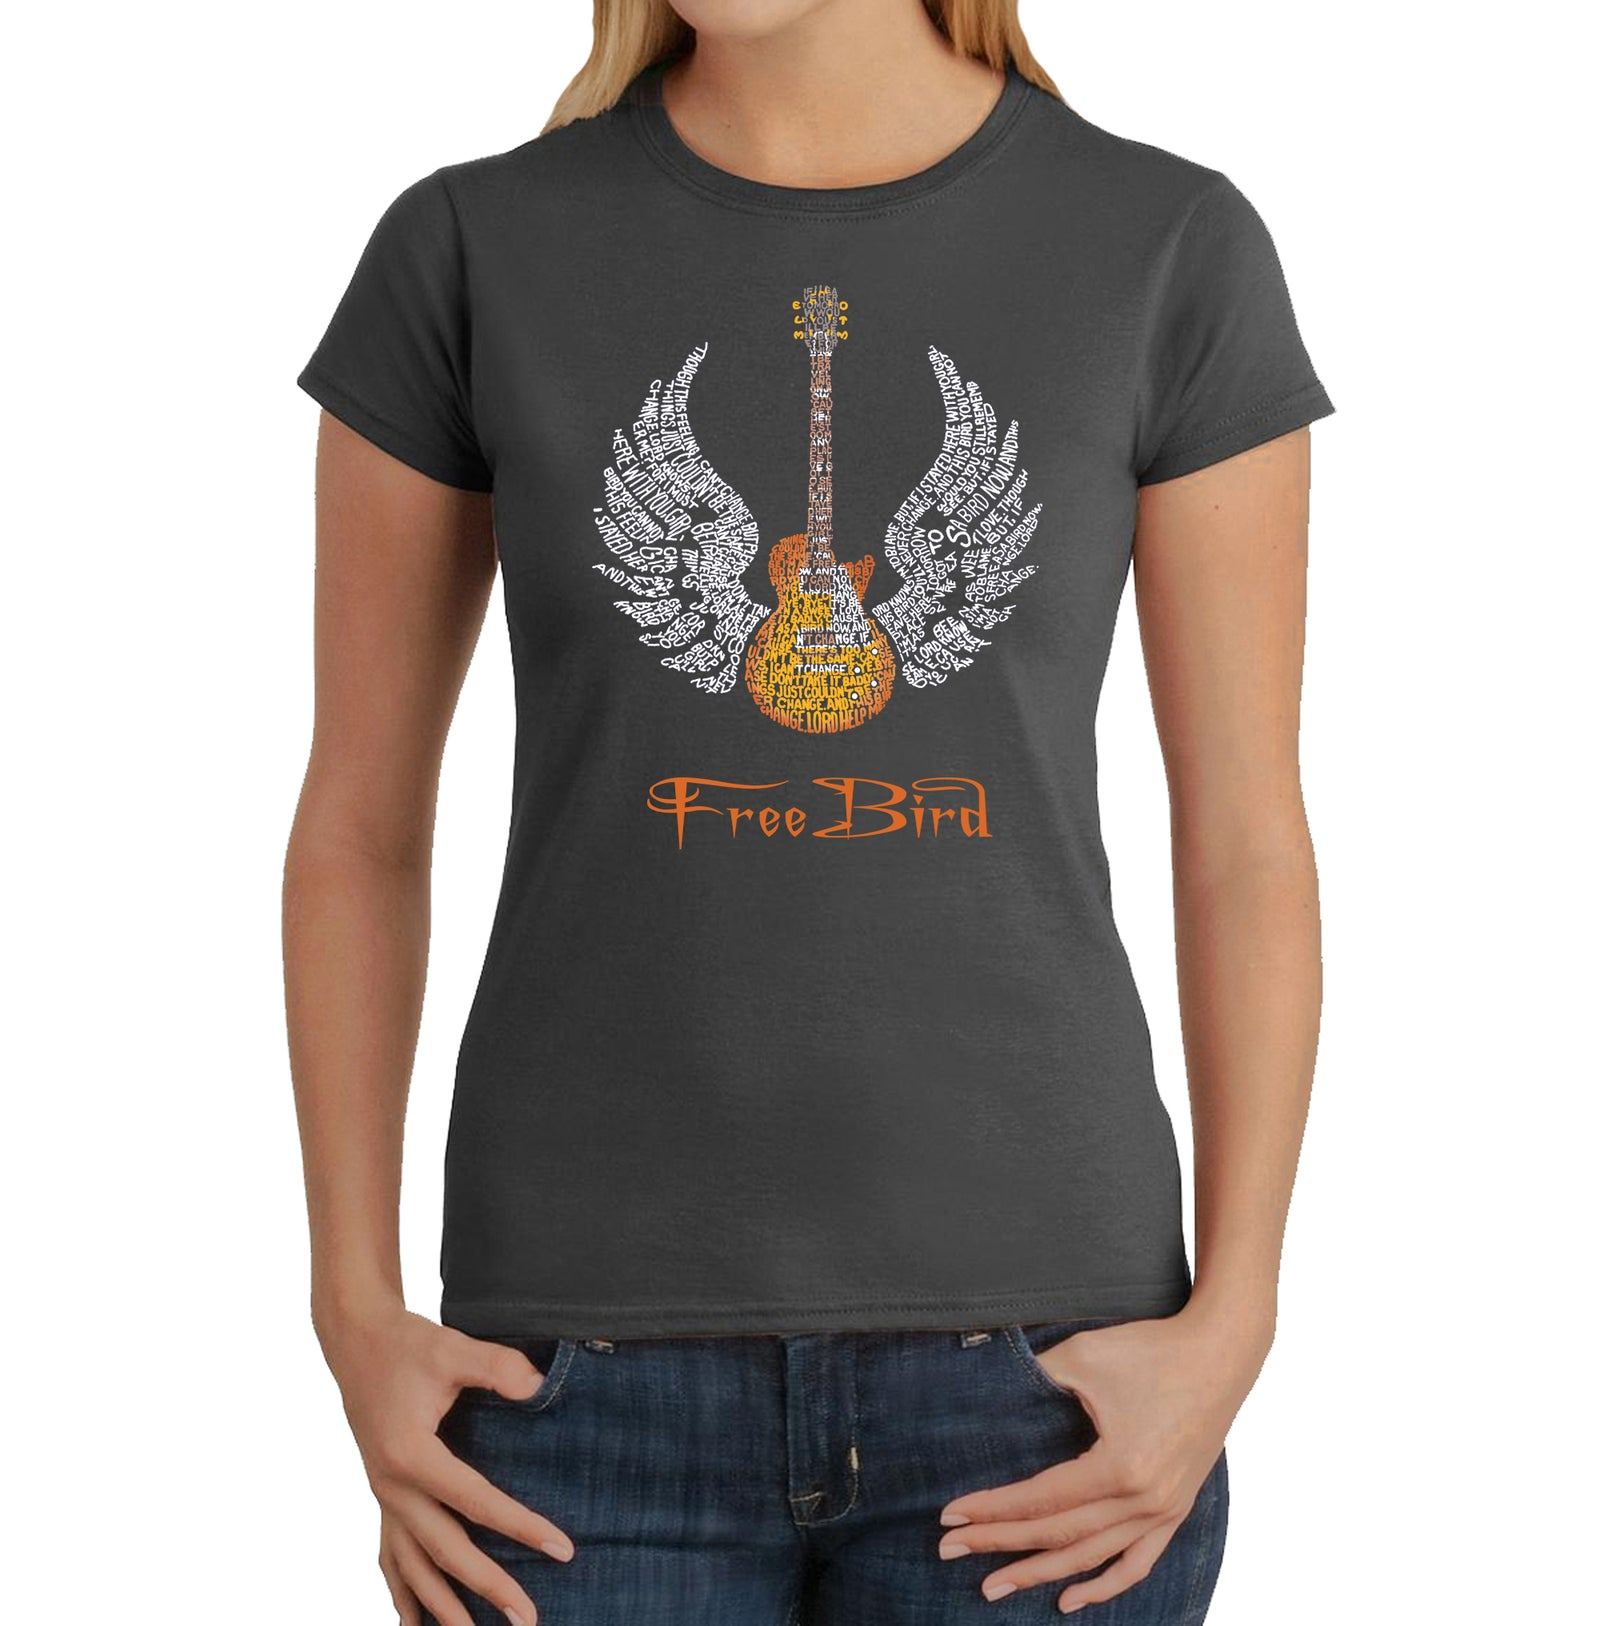 Women's T-Shirt - LYRICS TO FREEBIRD